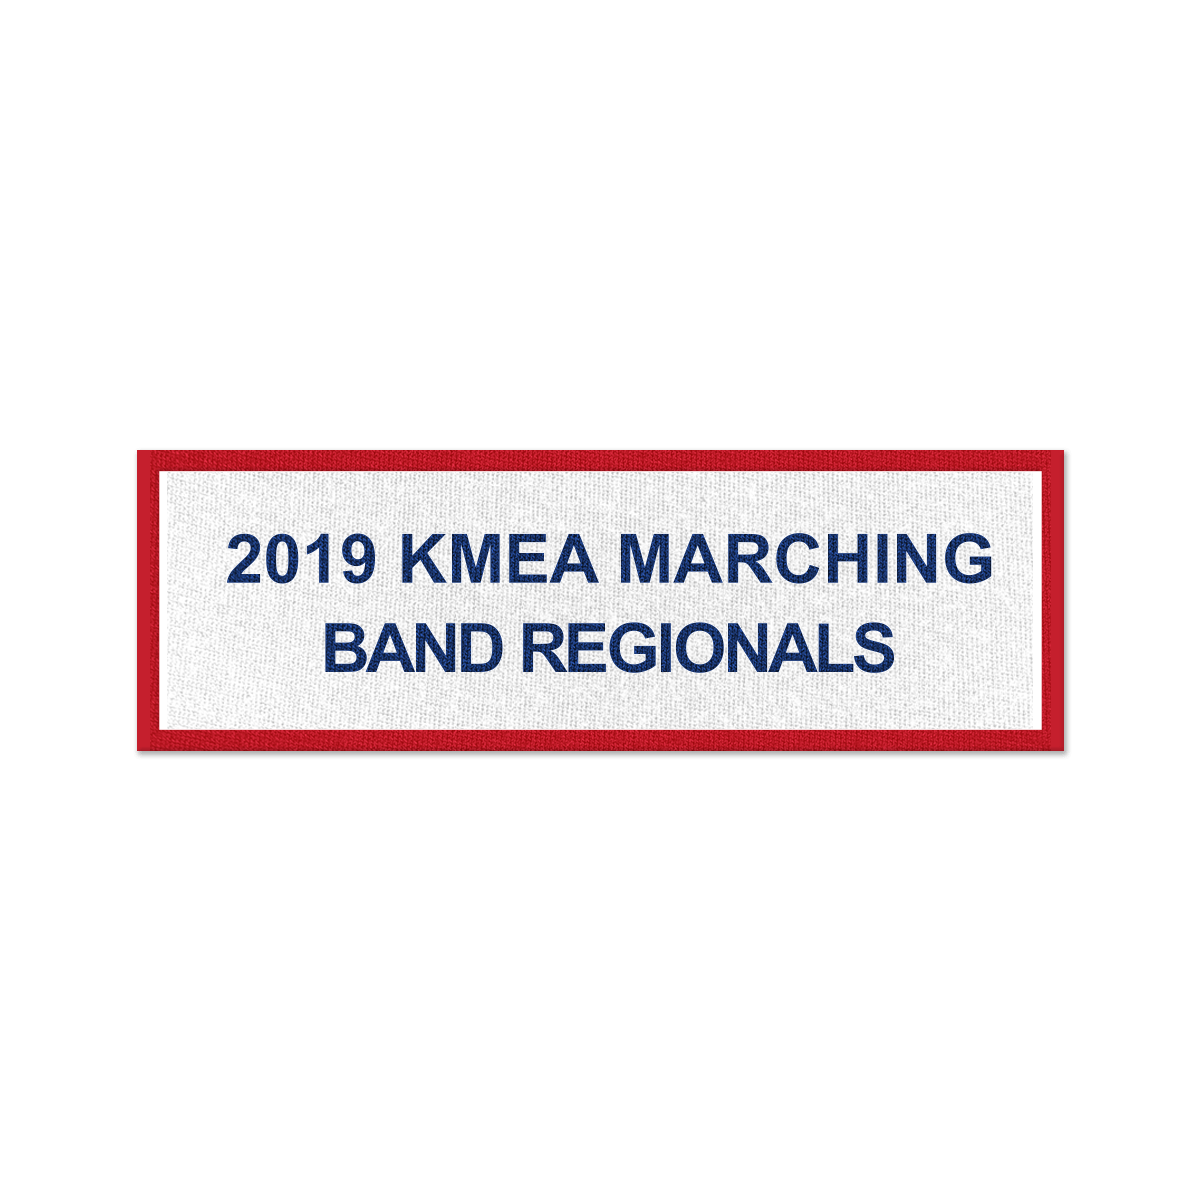 2019 KyMEA Marching Band Regional Quarterfinals Patch